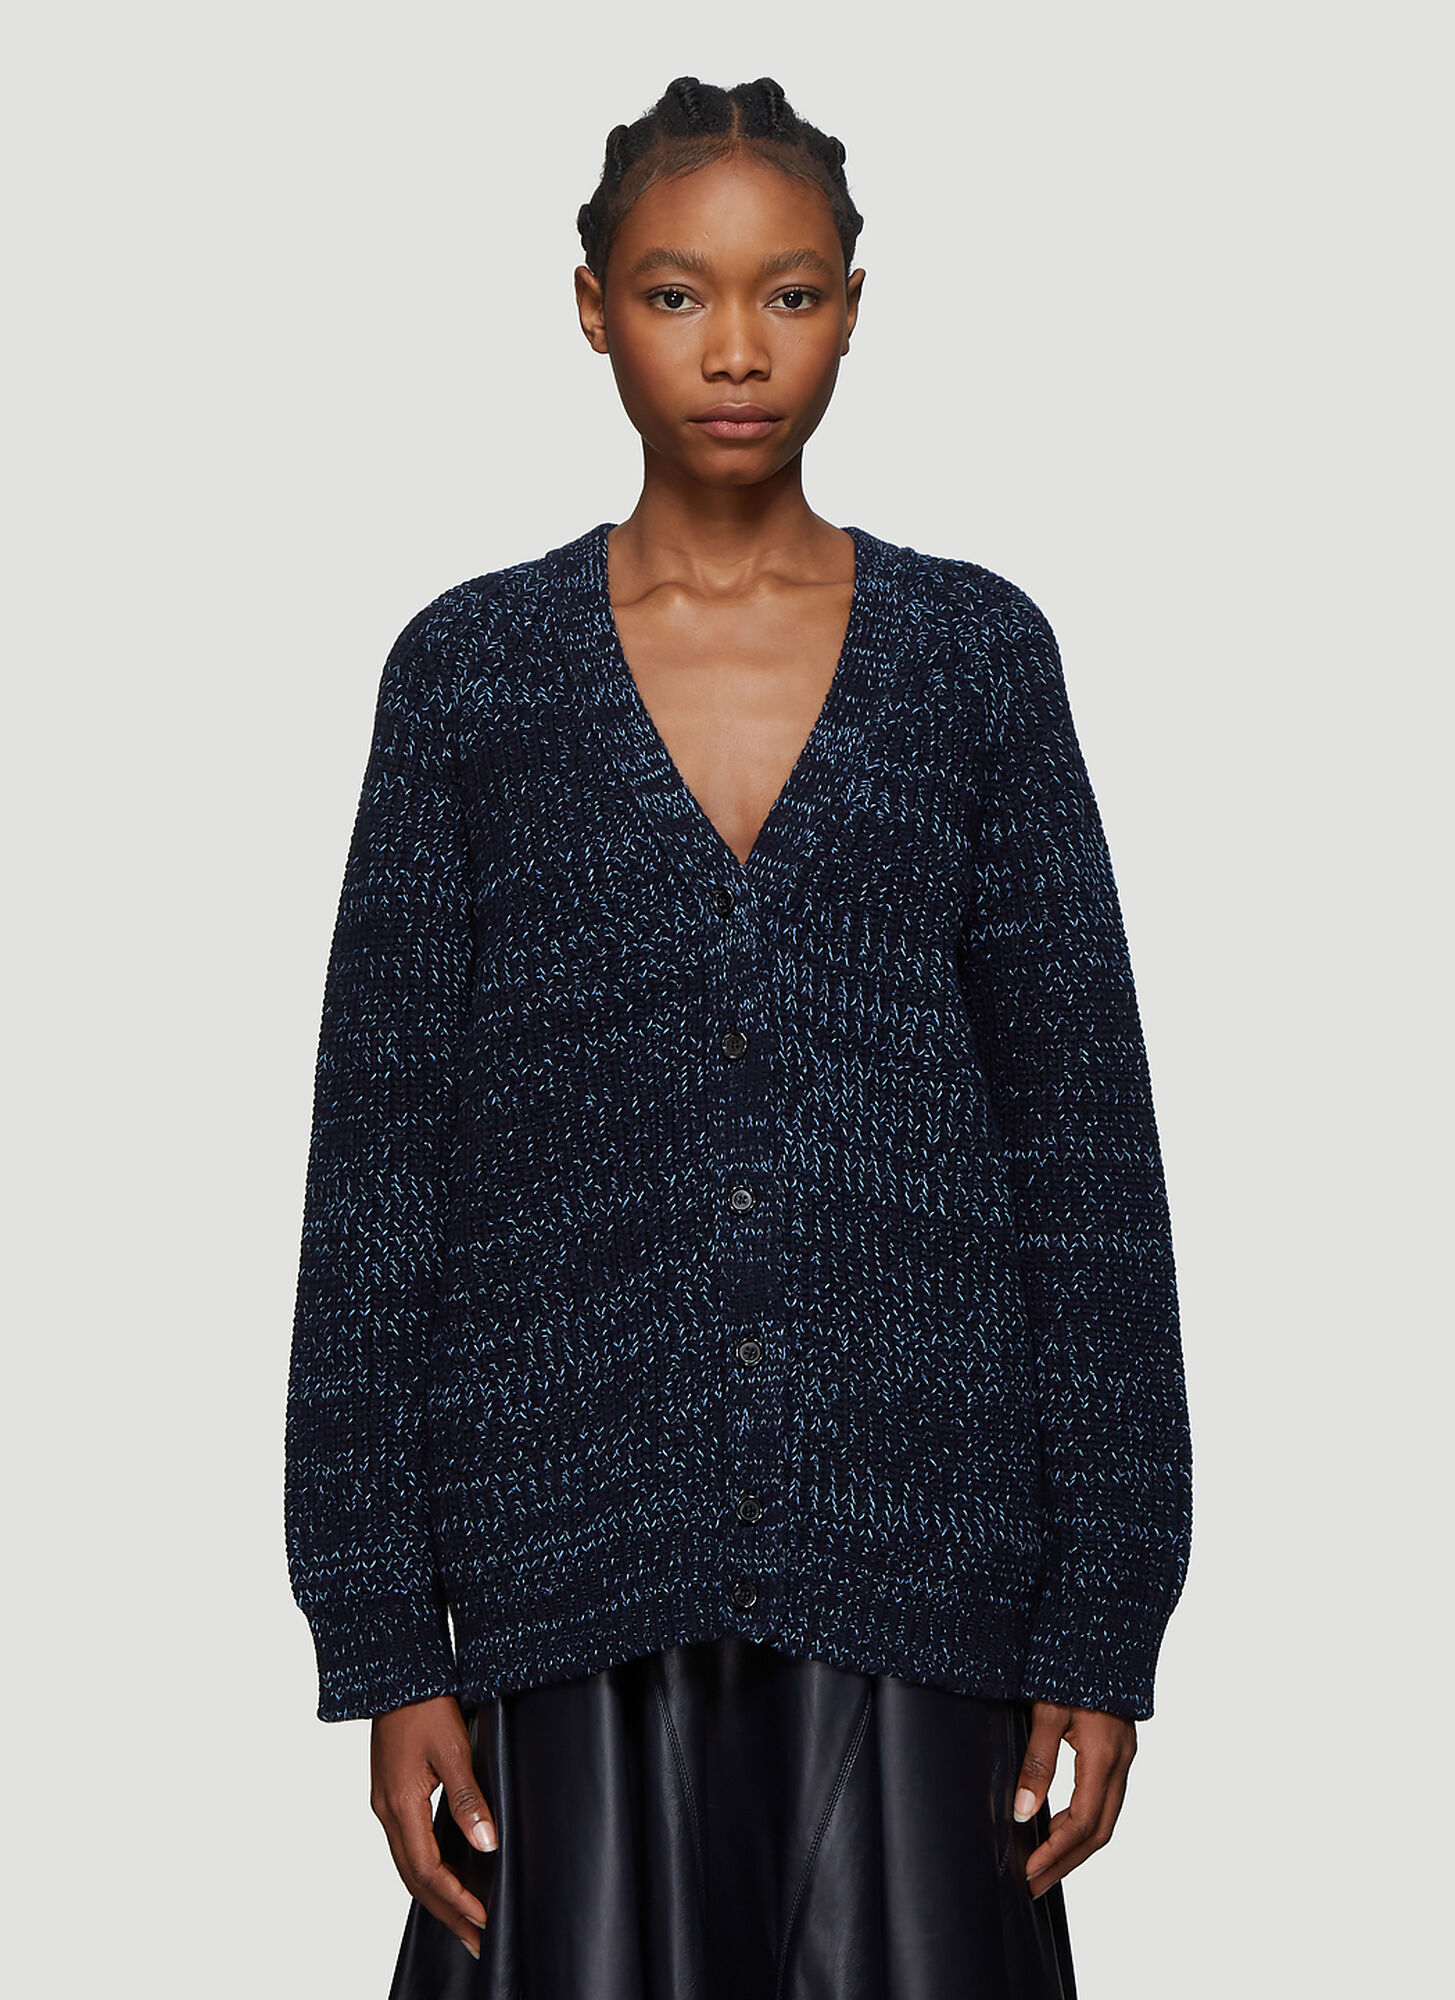 Marni Two-tone Knit Cardigan in Navy